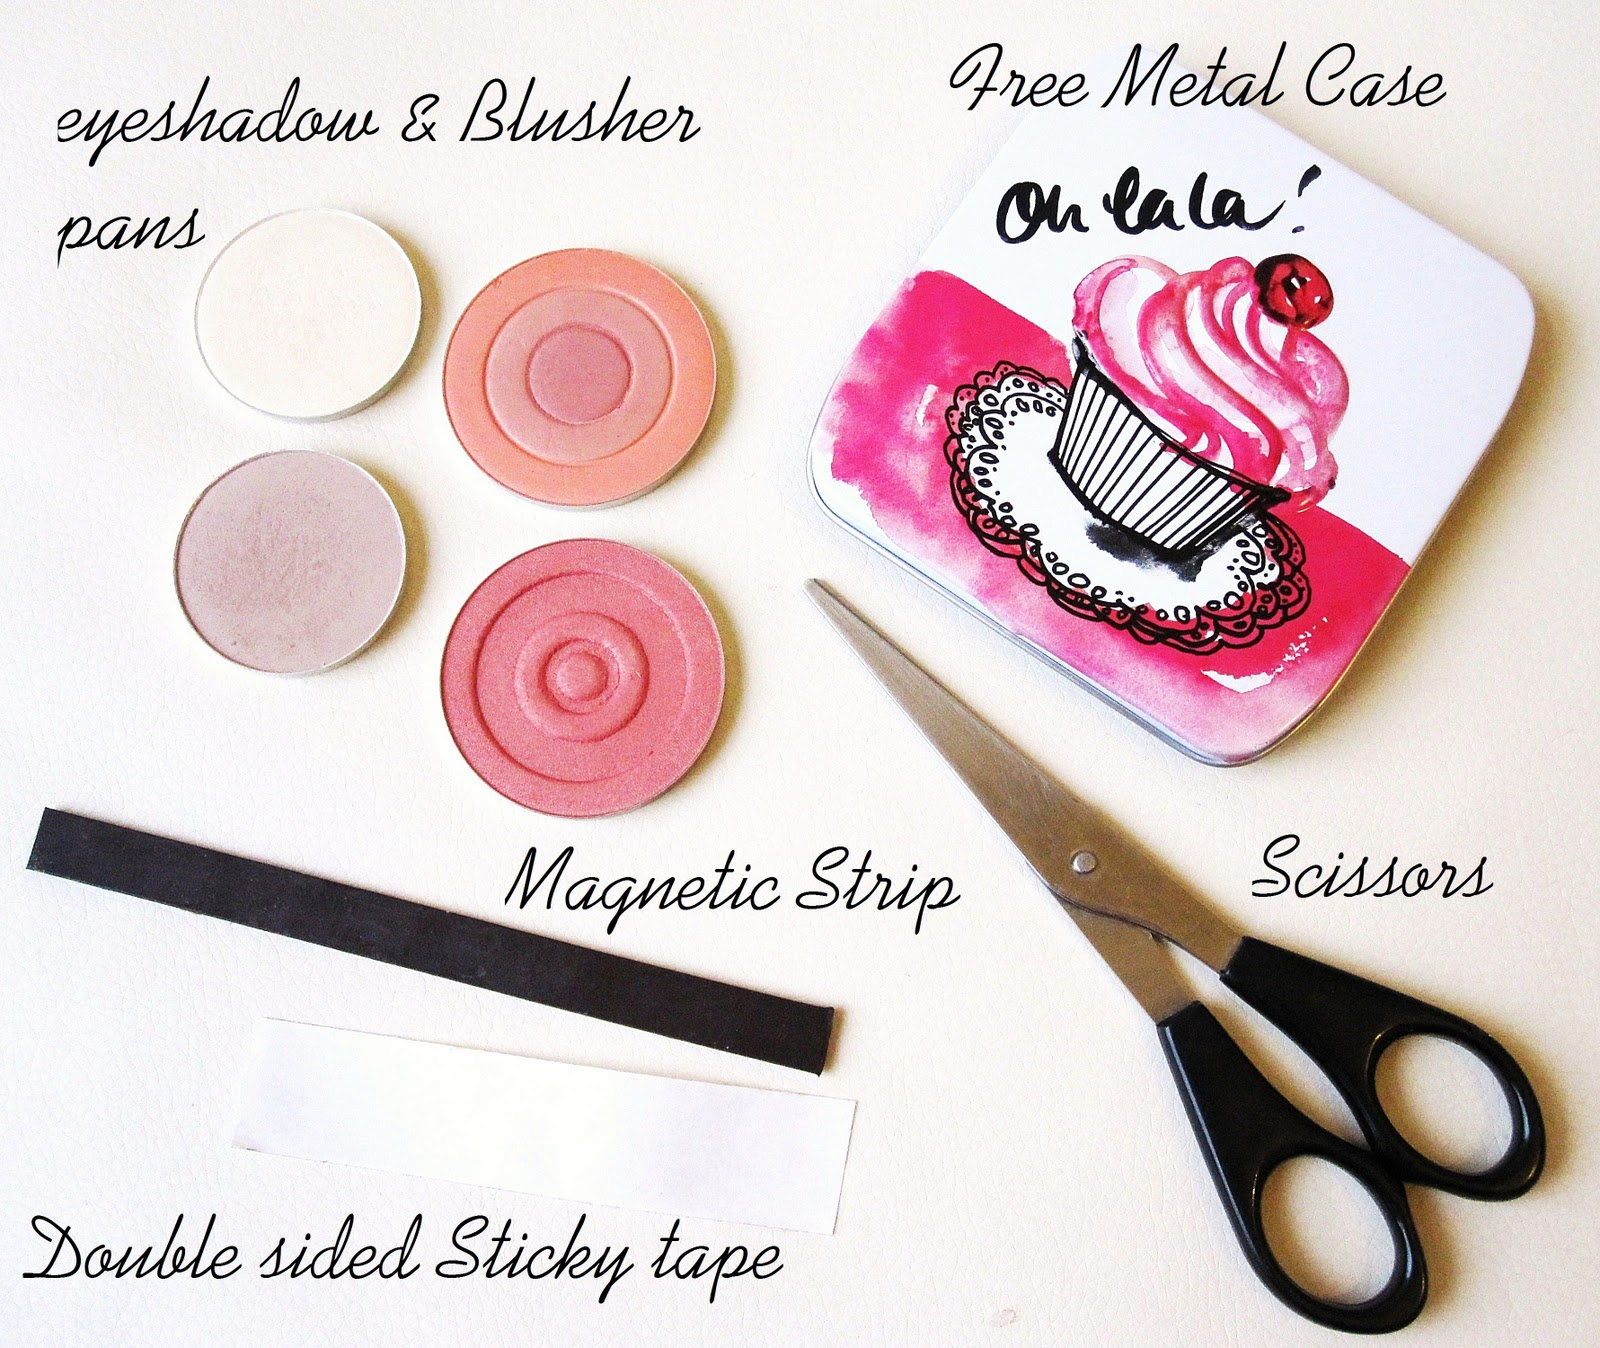 how to make your own customizable make up palette makeup savvy makeup and beauty blog. Black Bedroom Furniture Sets. Home Design Ideas